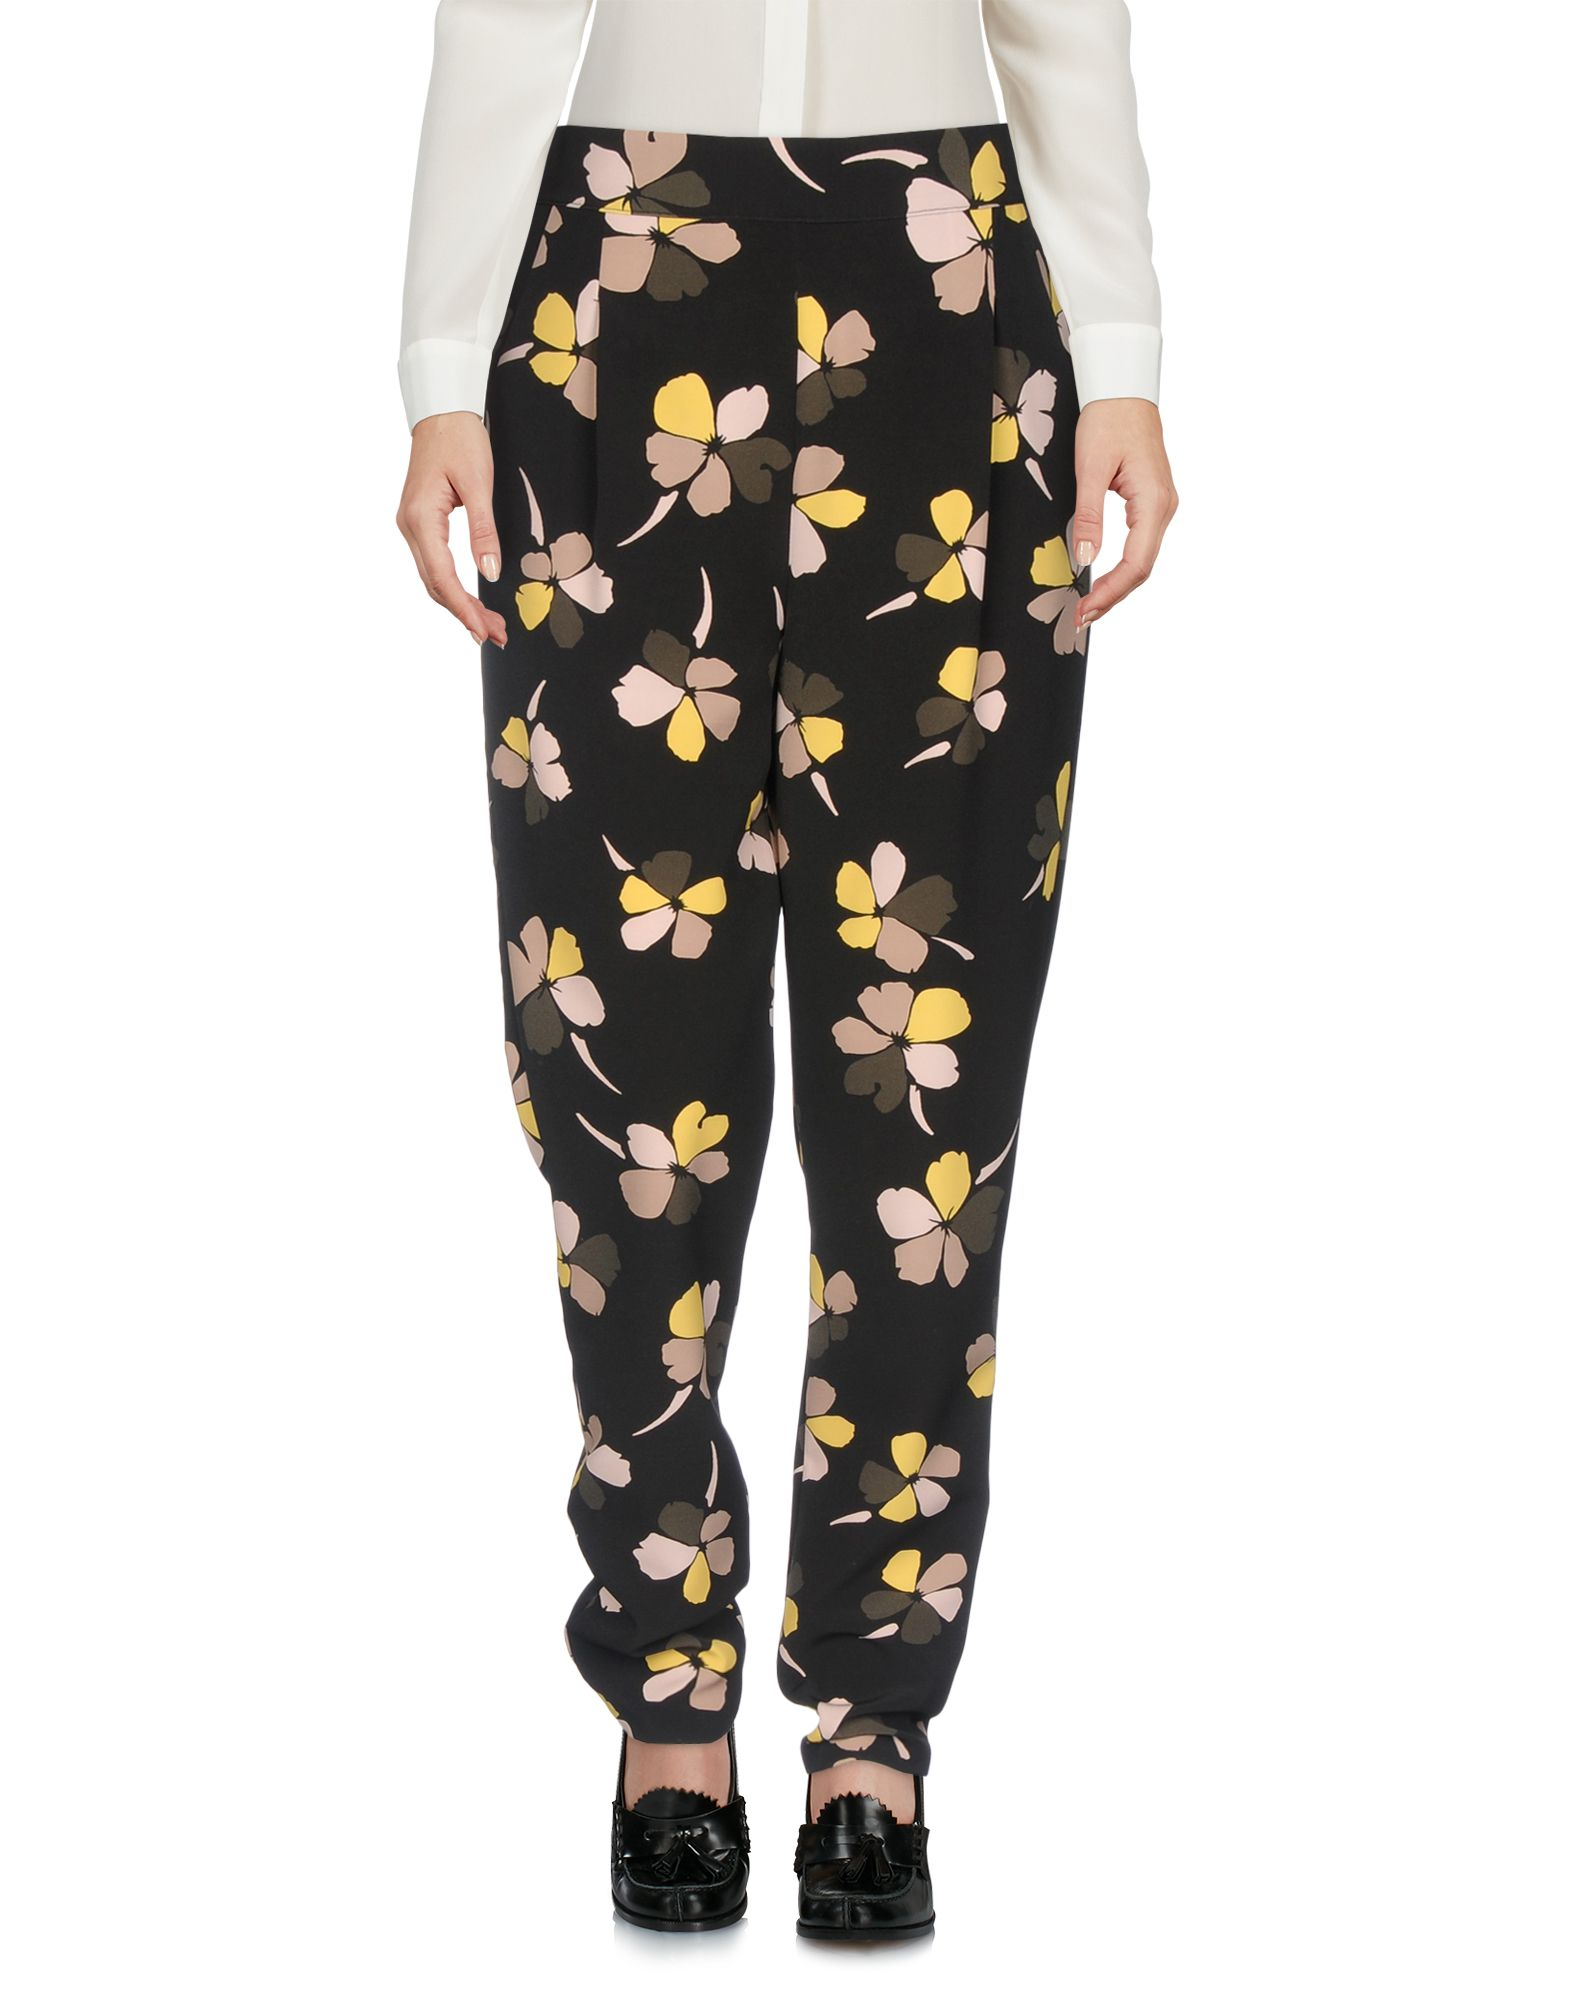 Pantalone 1-One Donna - Acquista online su